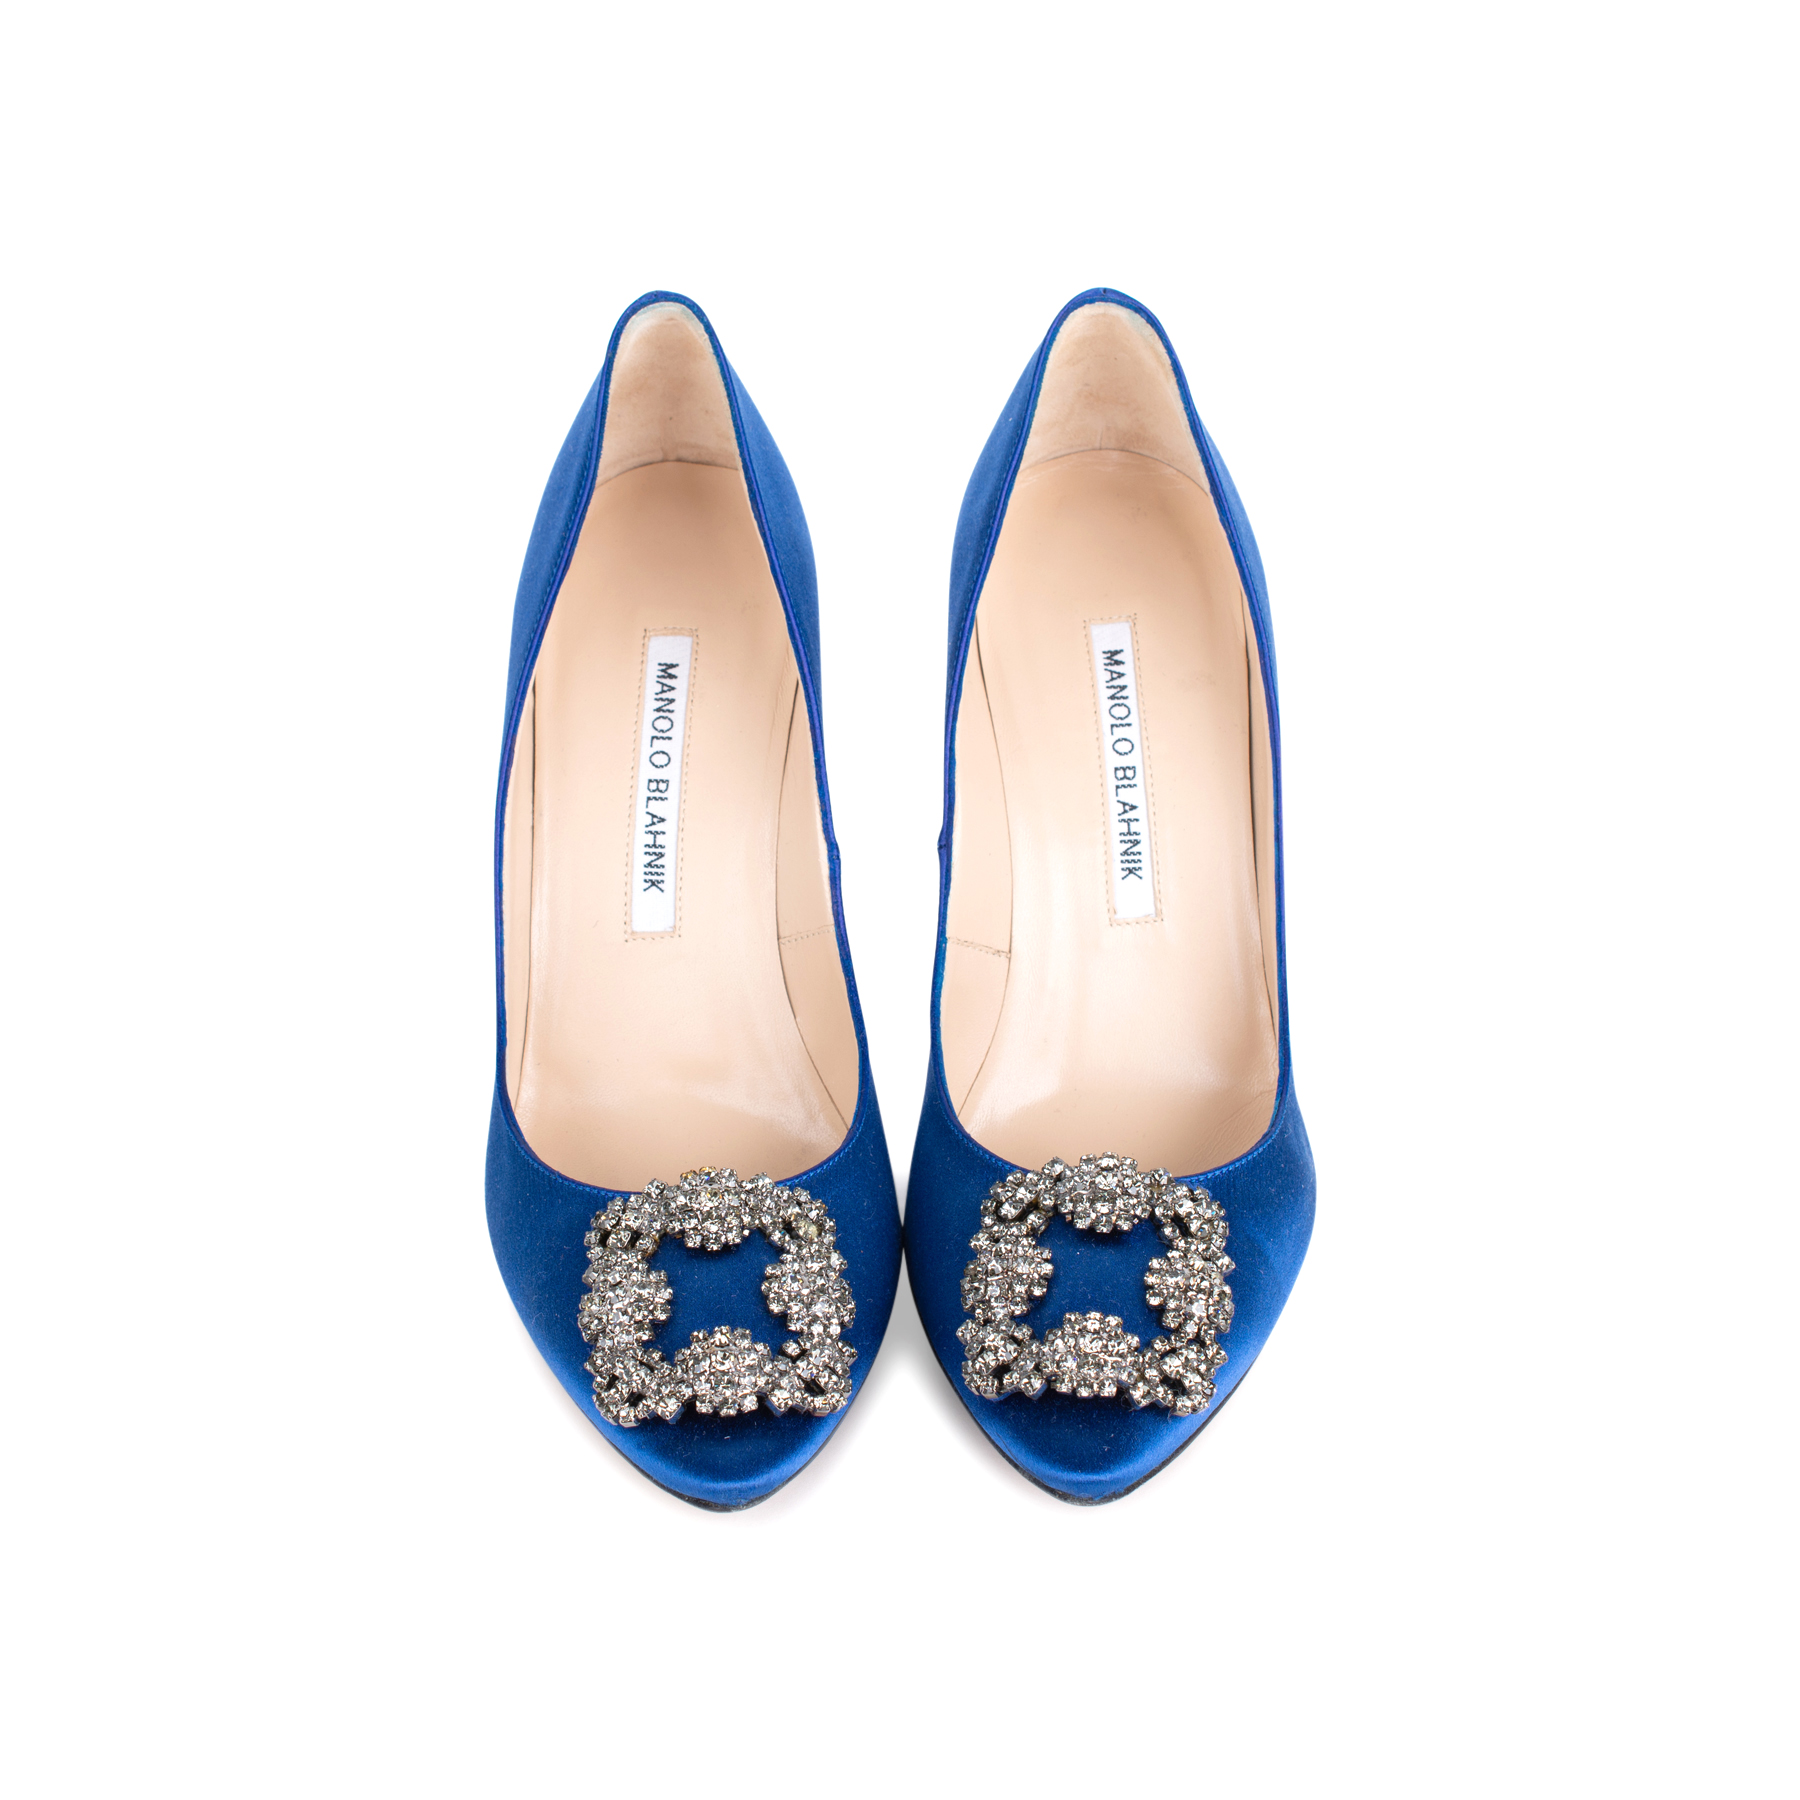 3a38918b1ed6 Authentic Second Hand Manolo Blahnik Blue Hangisi Pumps (PSS-544-00011)